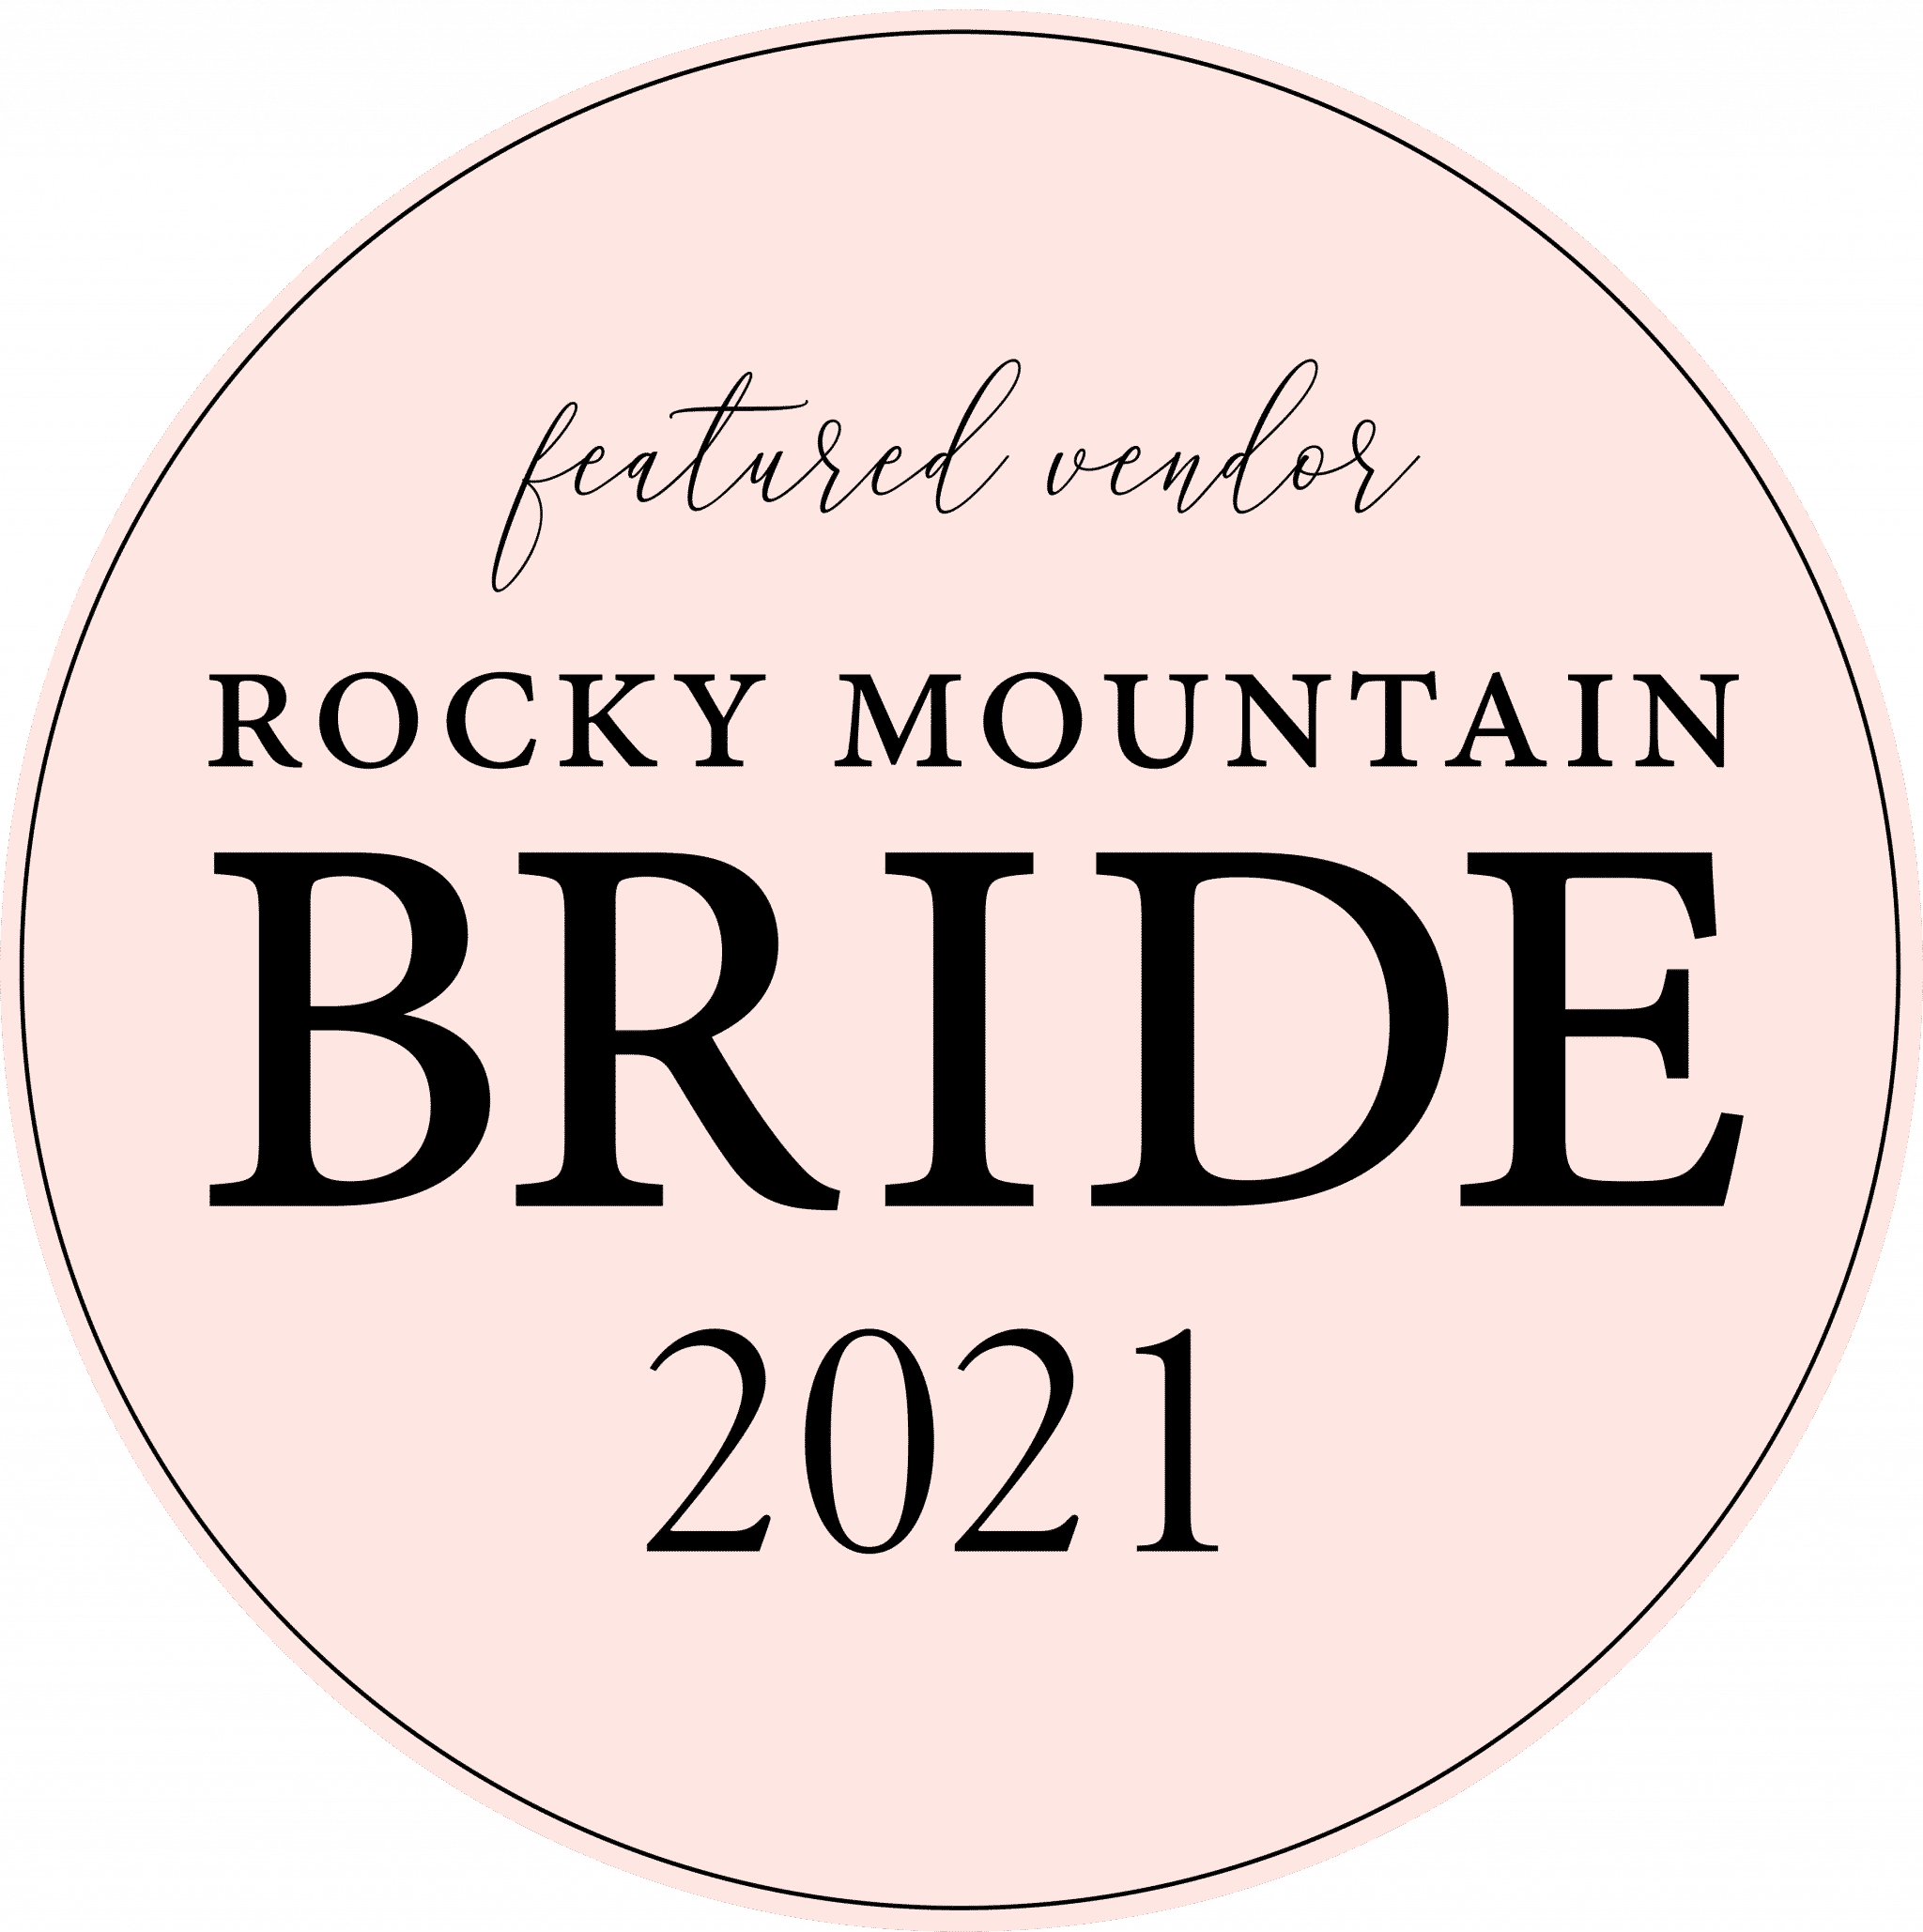 Rocky mountain bride featured